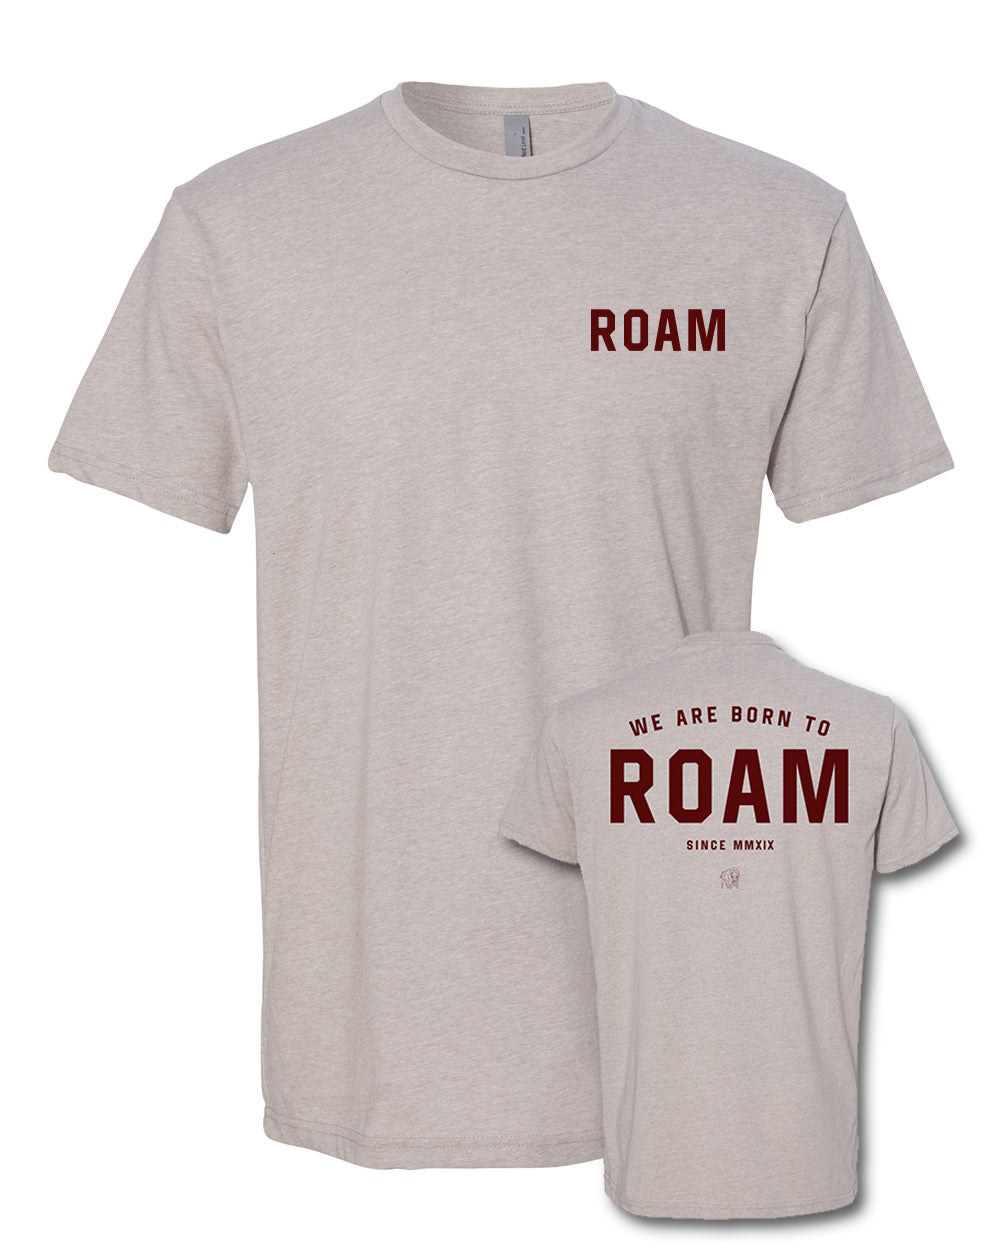 Born to ROAM Tee - <br> Silk - Both